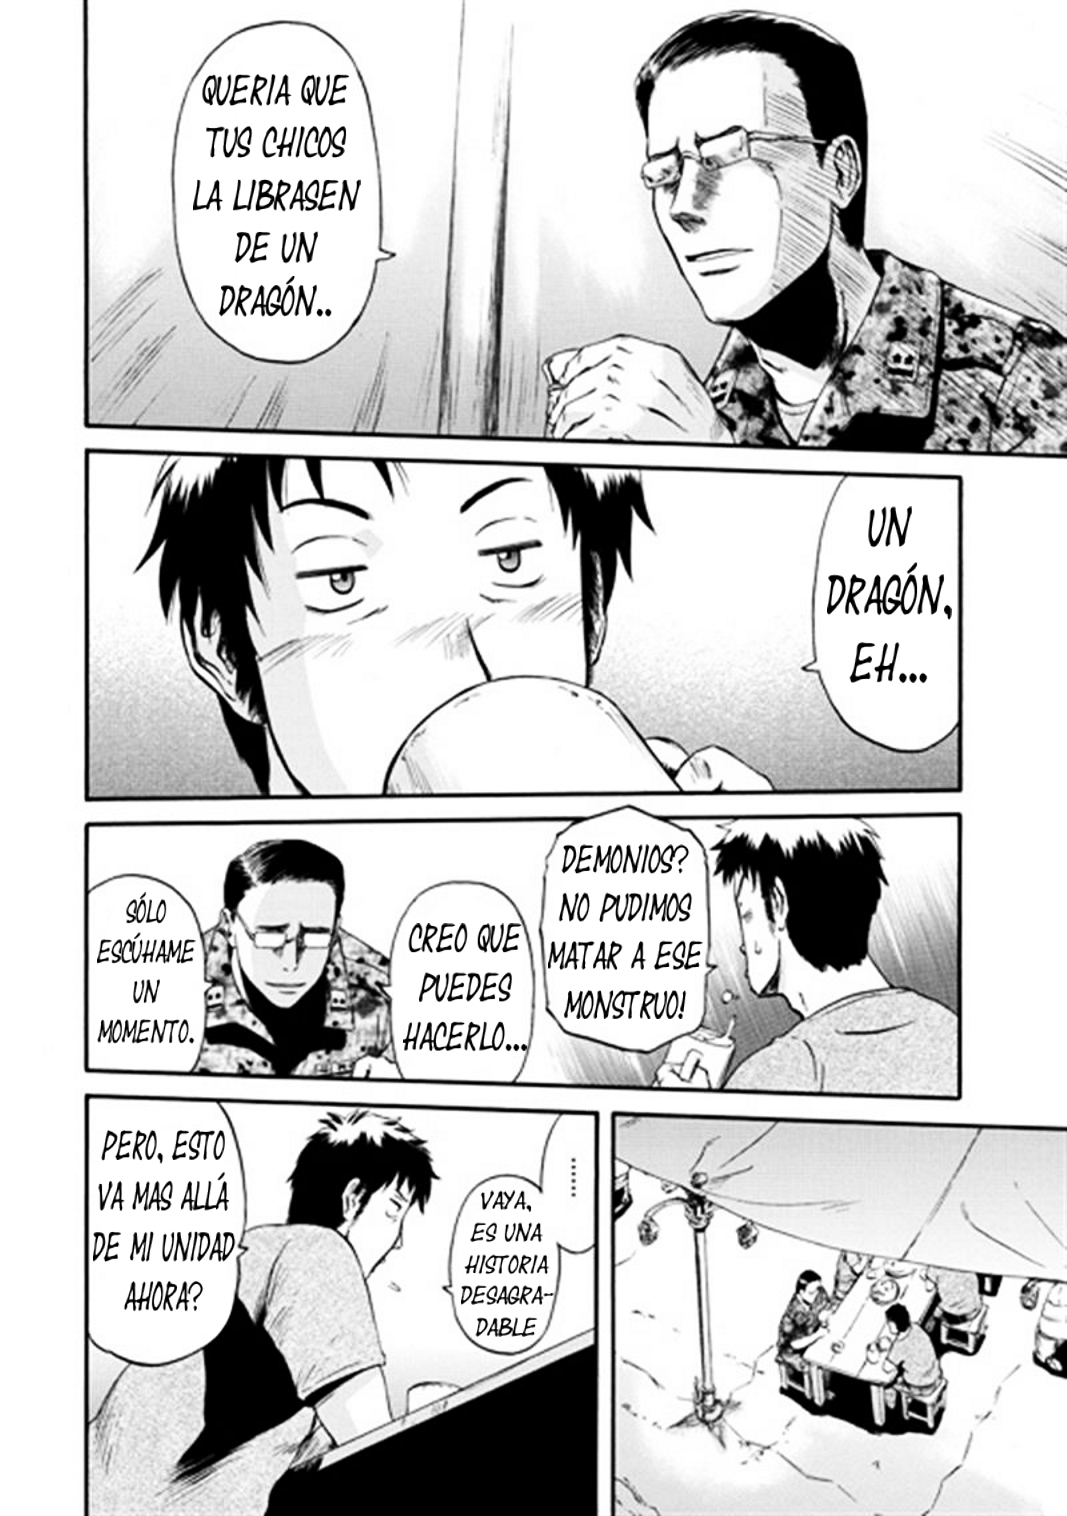 https://c5.ninemanga.com/es_manga/59/187/351176/72e0ac3a885b78926065a979b6a46206.jpg Page 21